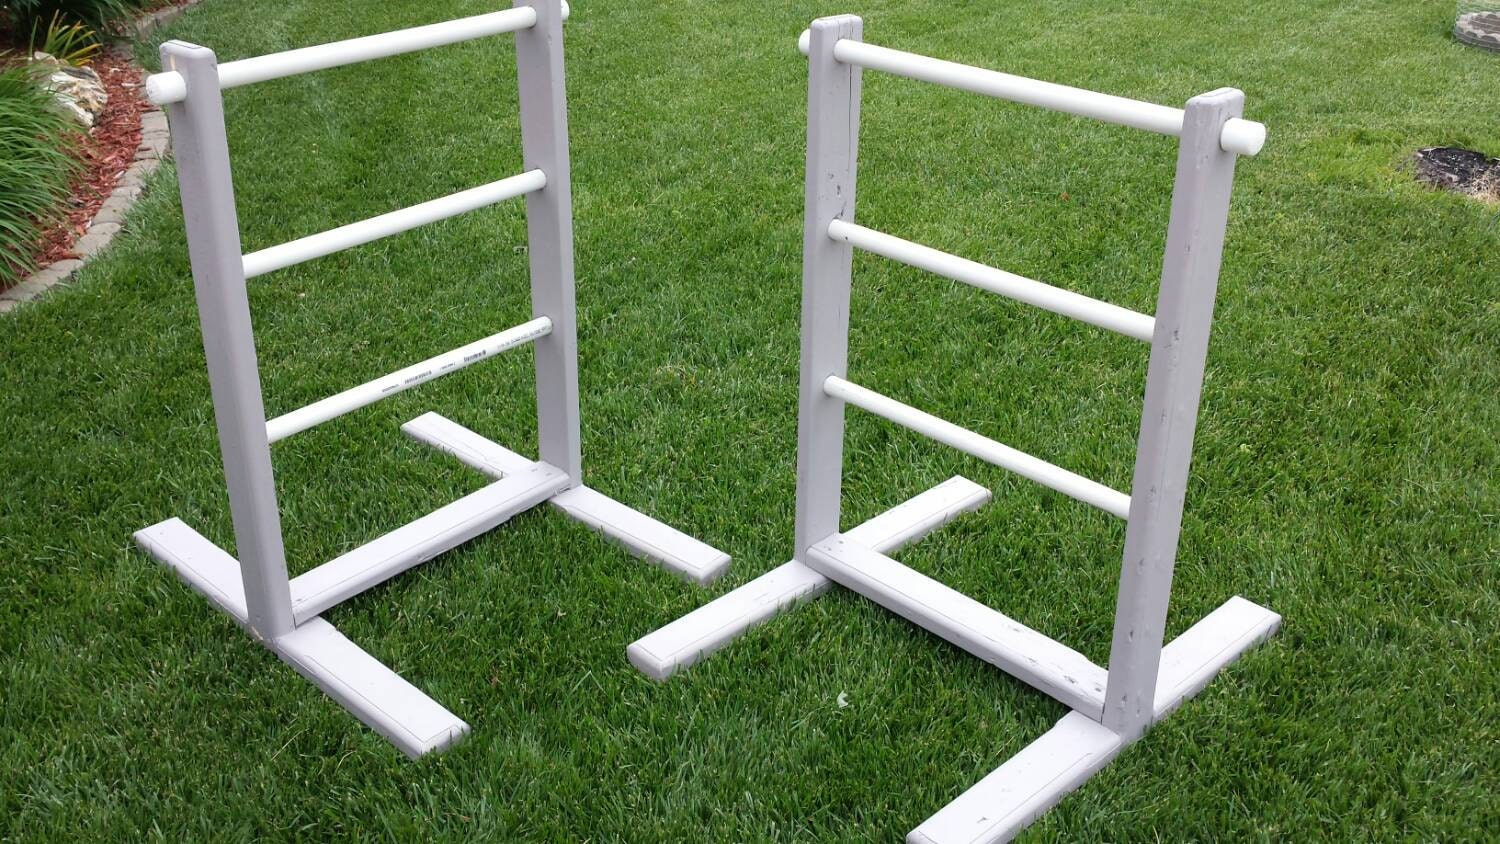 Pvc Ladder Rungs : Homemade hillbilly golf ladder set